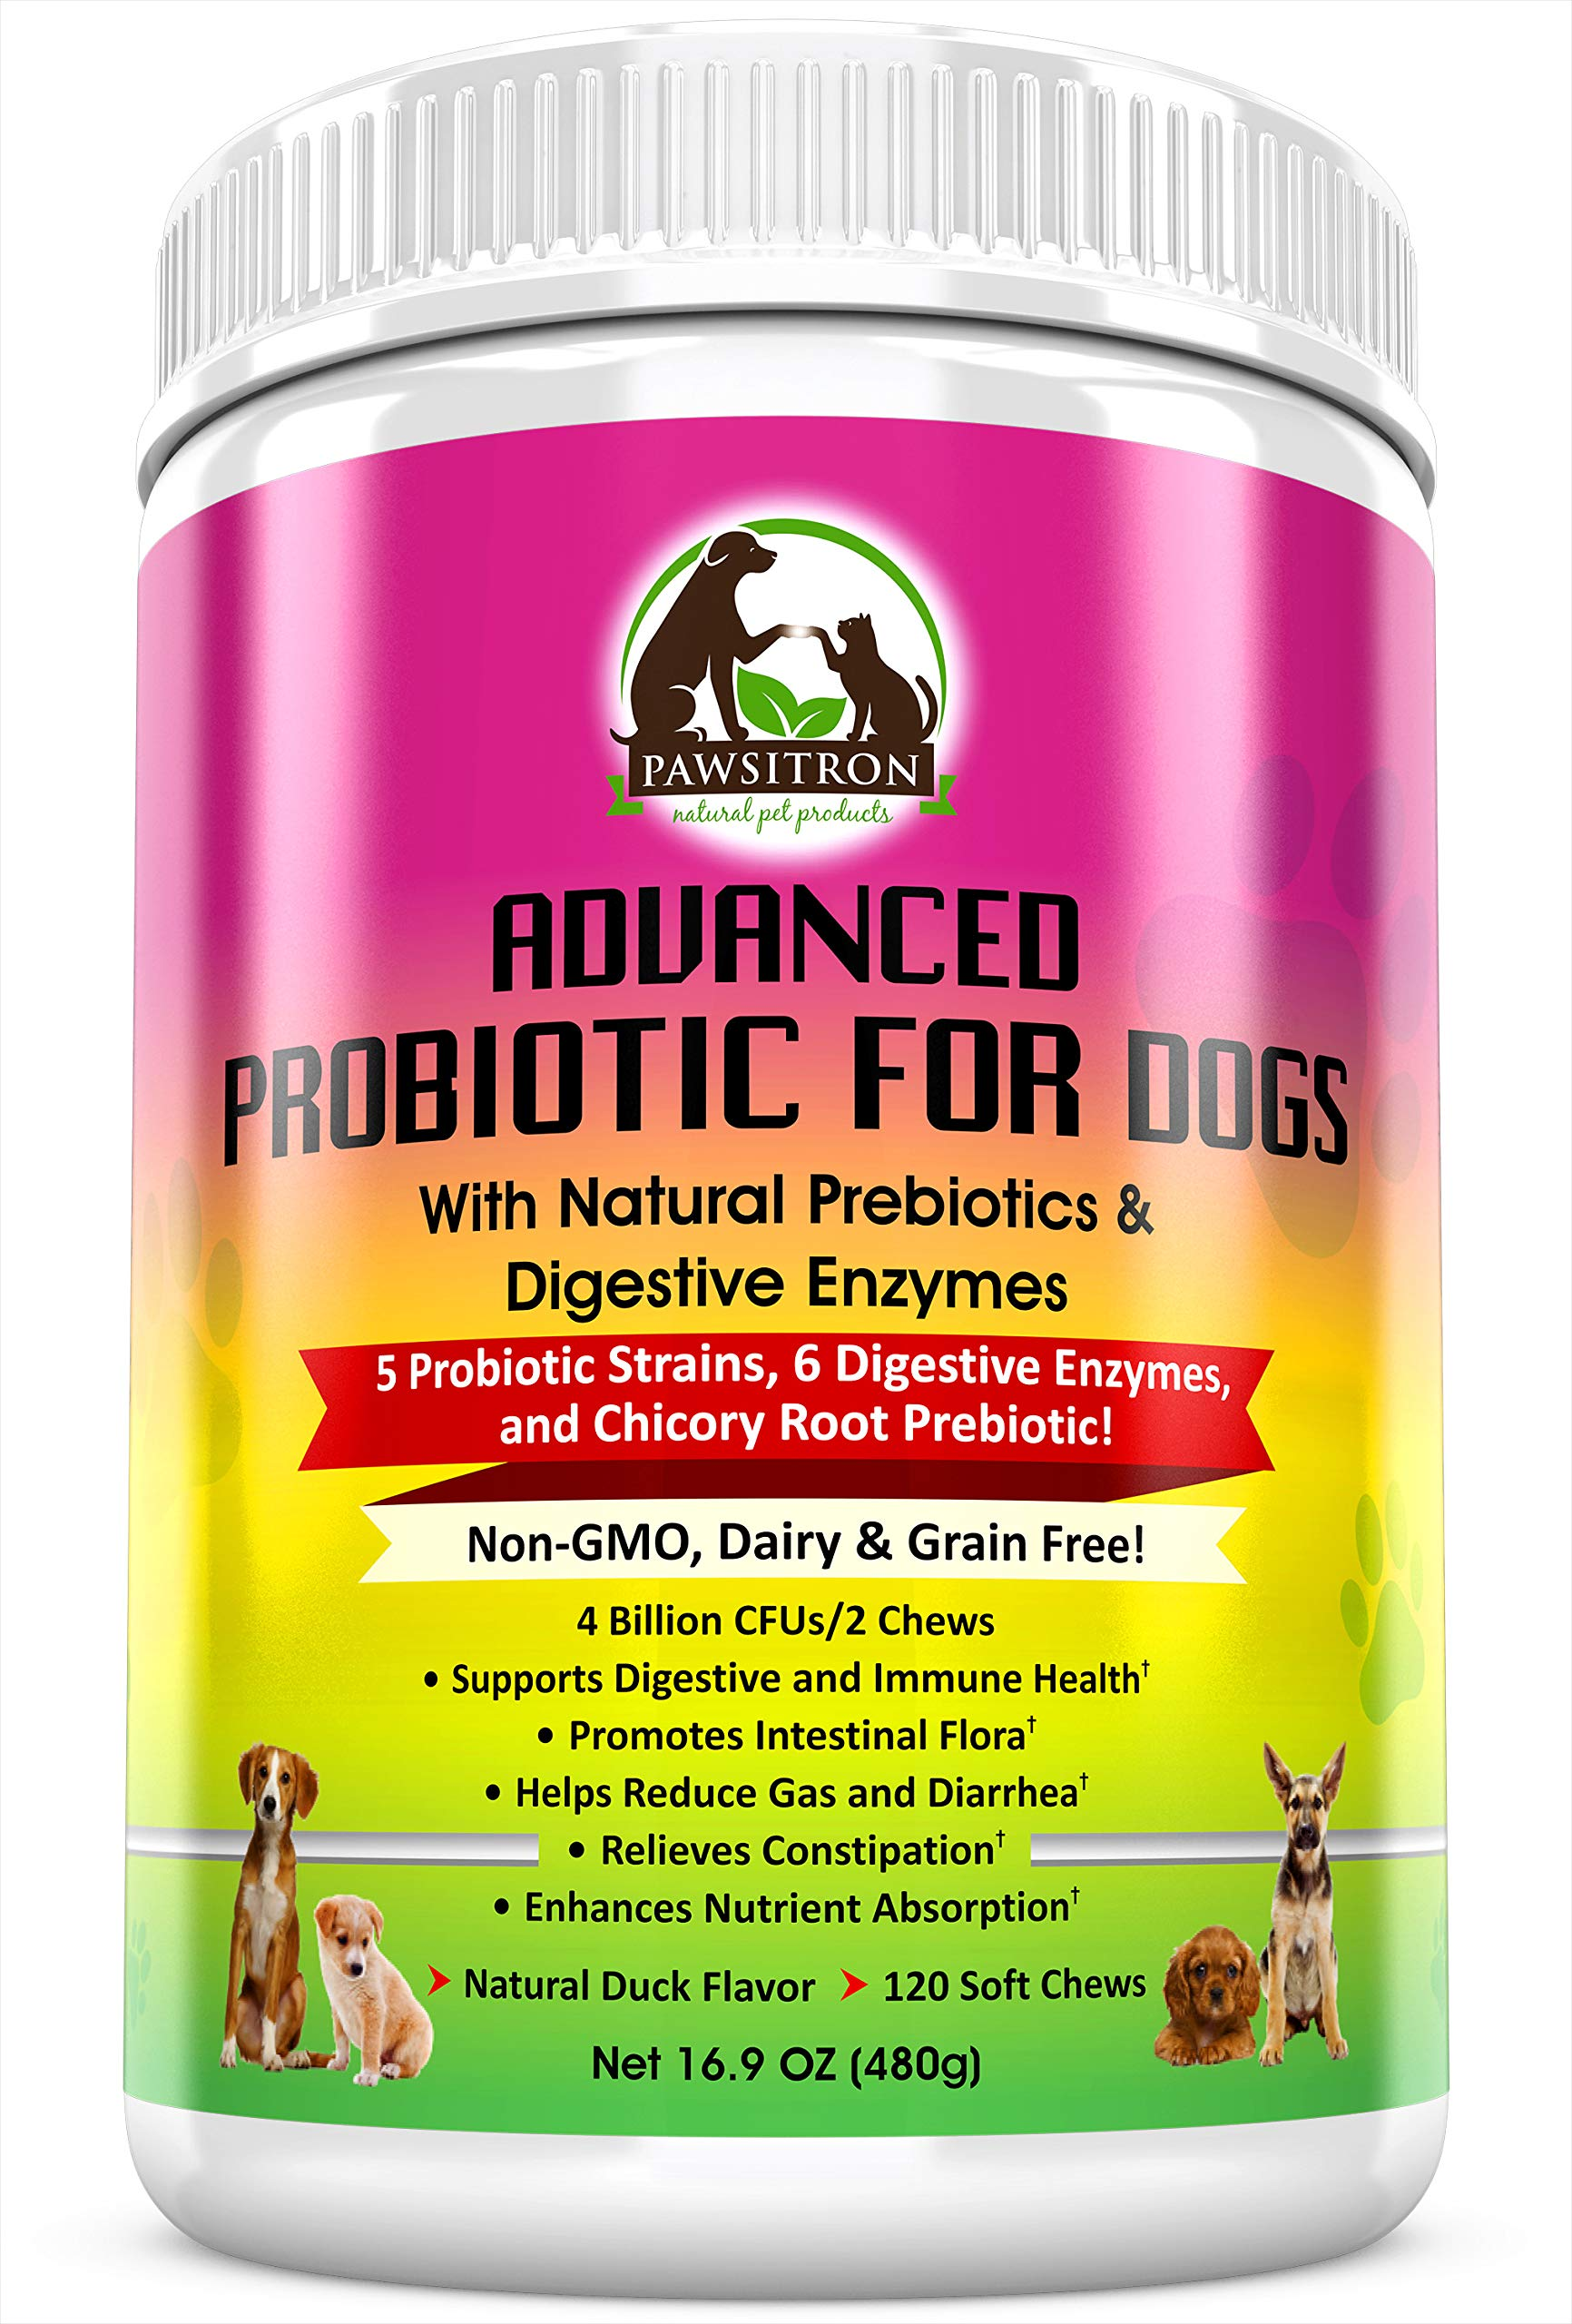 Advanced Probiotics for Dogs with Prebiotics + Digestive Enzymes for Overall Wellness, Digestion, Bad Breath, Diarrhea Relief, Constipation - Healthy Dog Treats, Non GMO, Grain Free, 120 Soft Chews